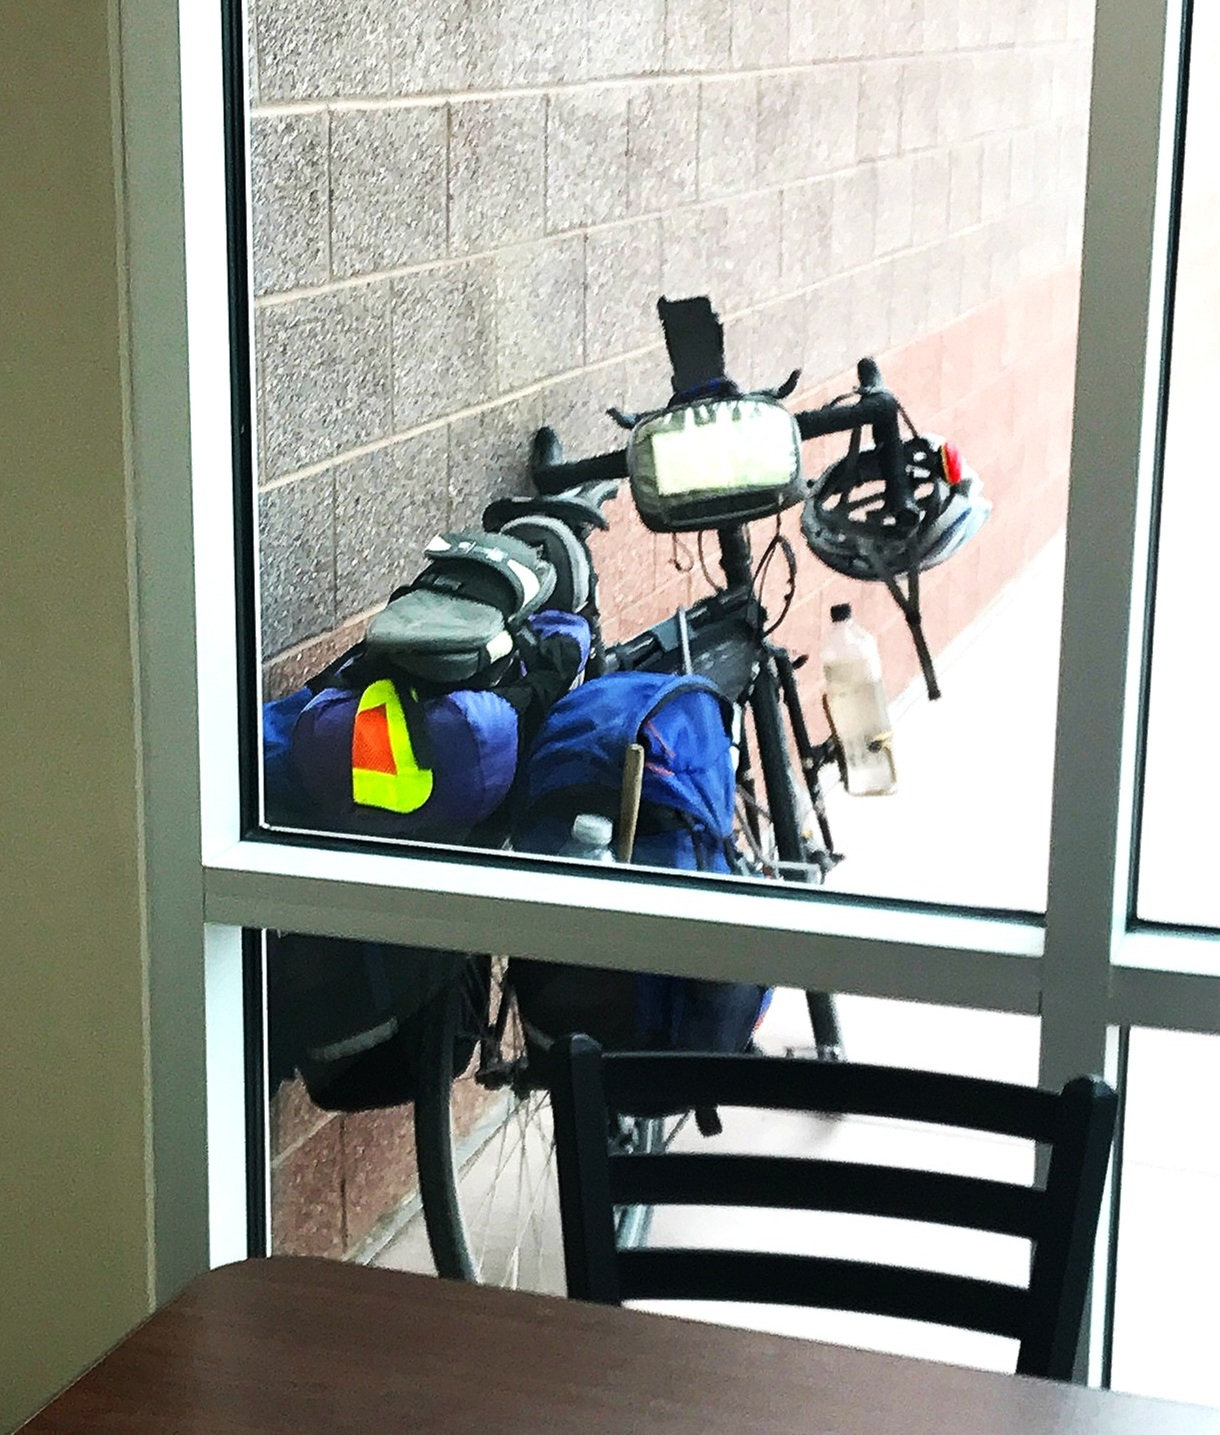 To prevent against theft, some bicycle tourists will choose seats at restaurants that look out on their bikes.   Photo courtesy Brandon Lampley.